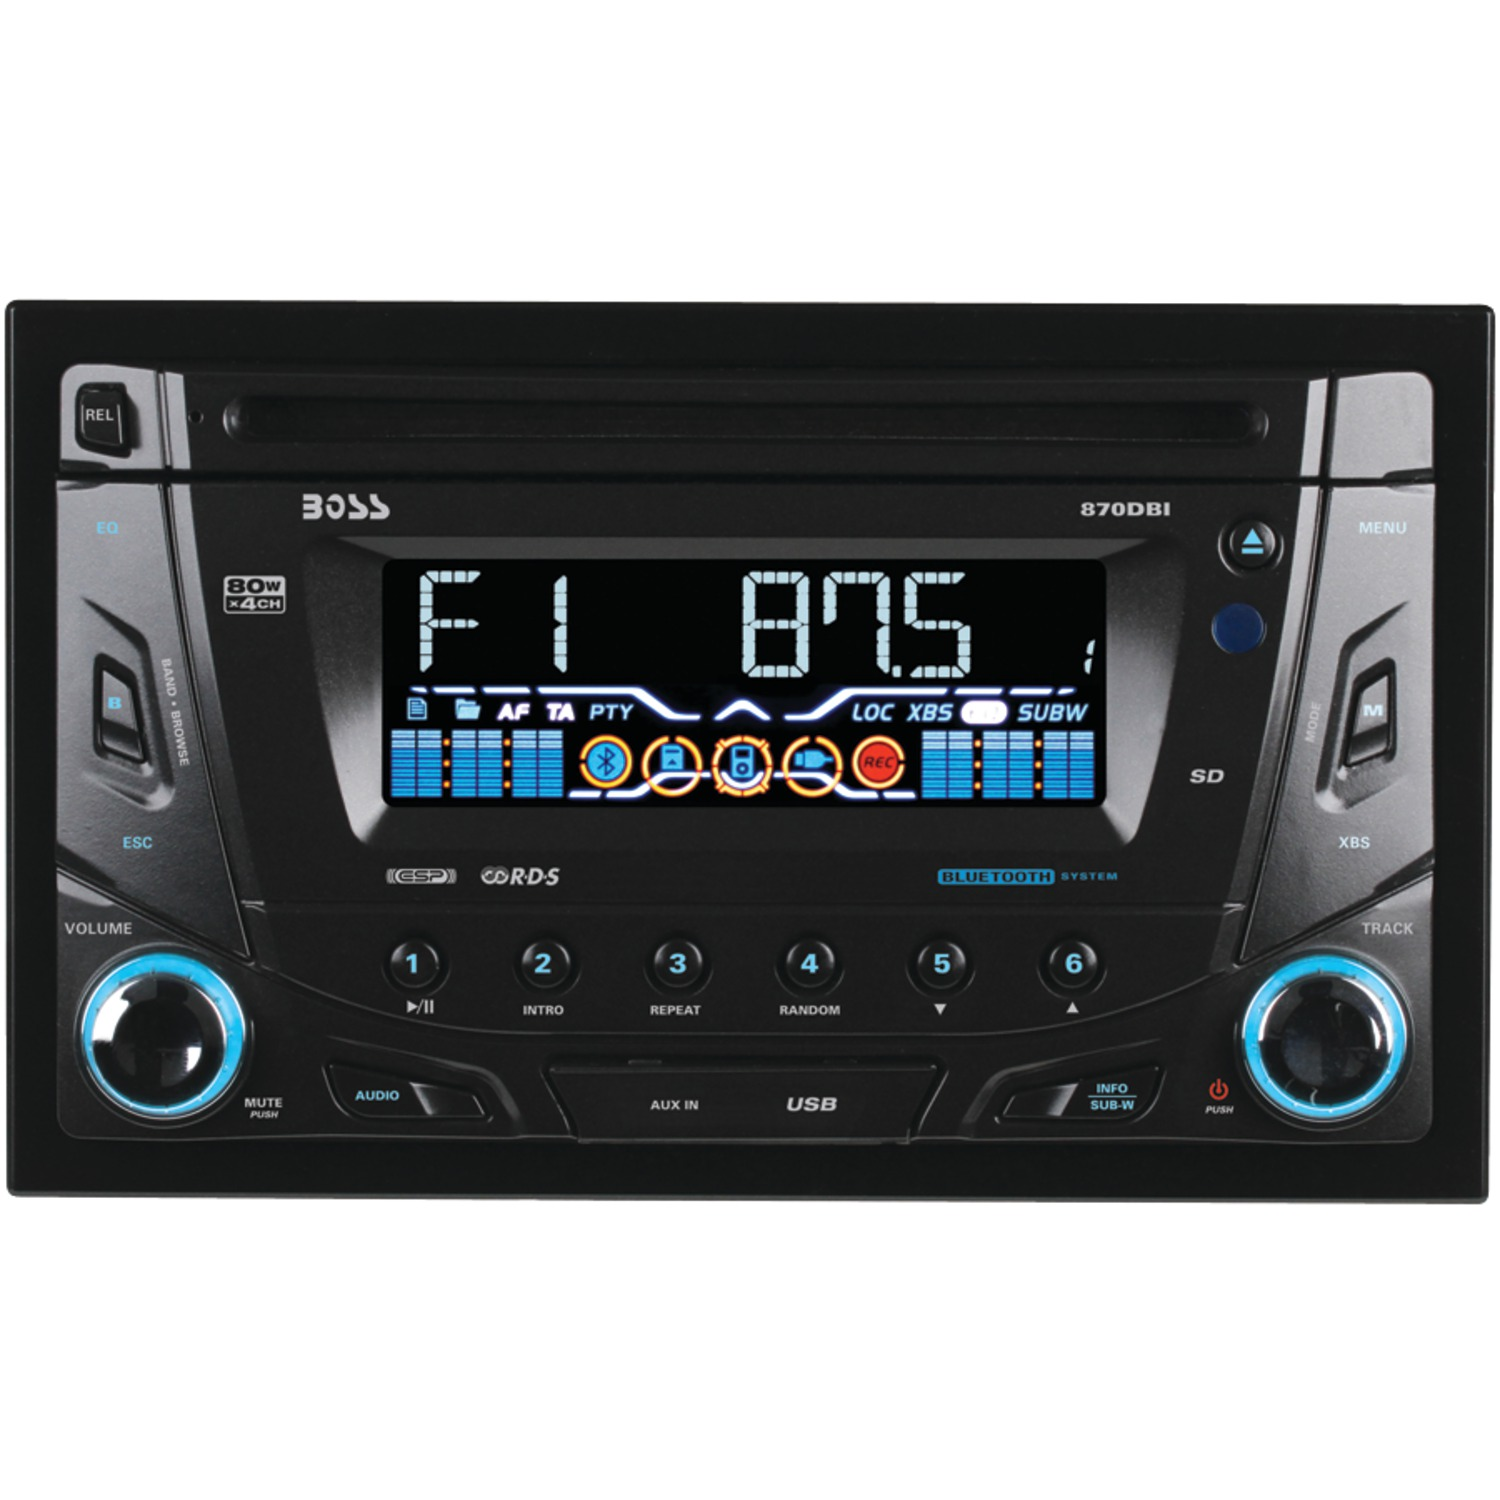 Boss Bv9538b Double Din Bluetooth Dvd Car Stereo Receiver: Double-DIN In-Dash CD Receiver With